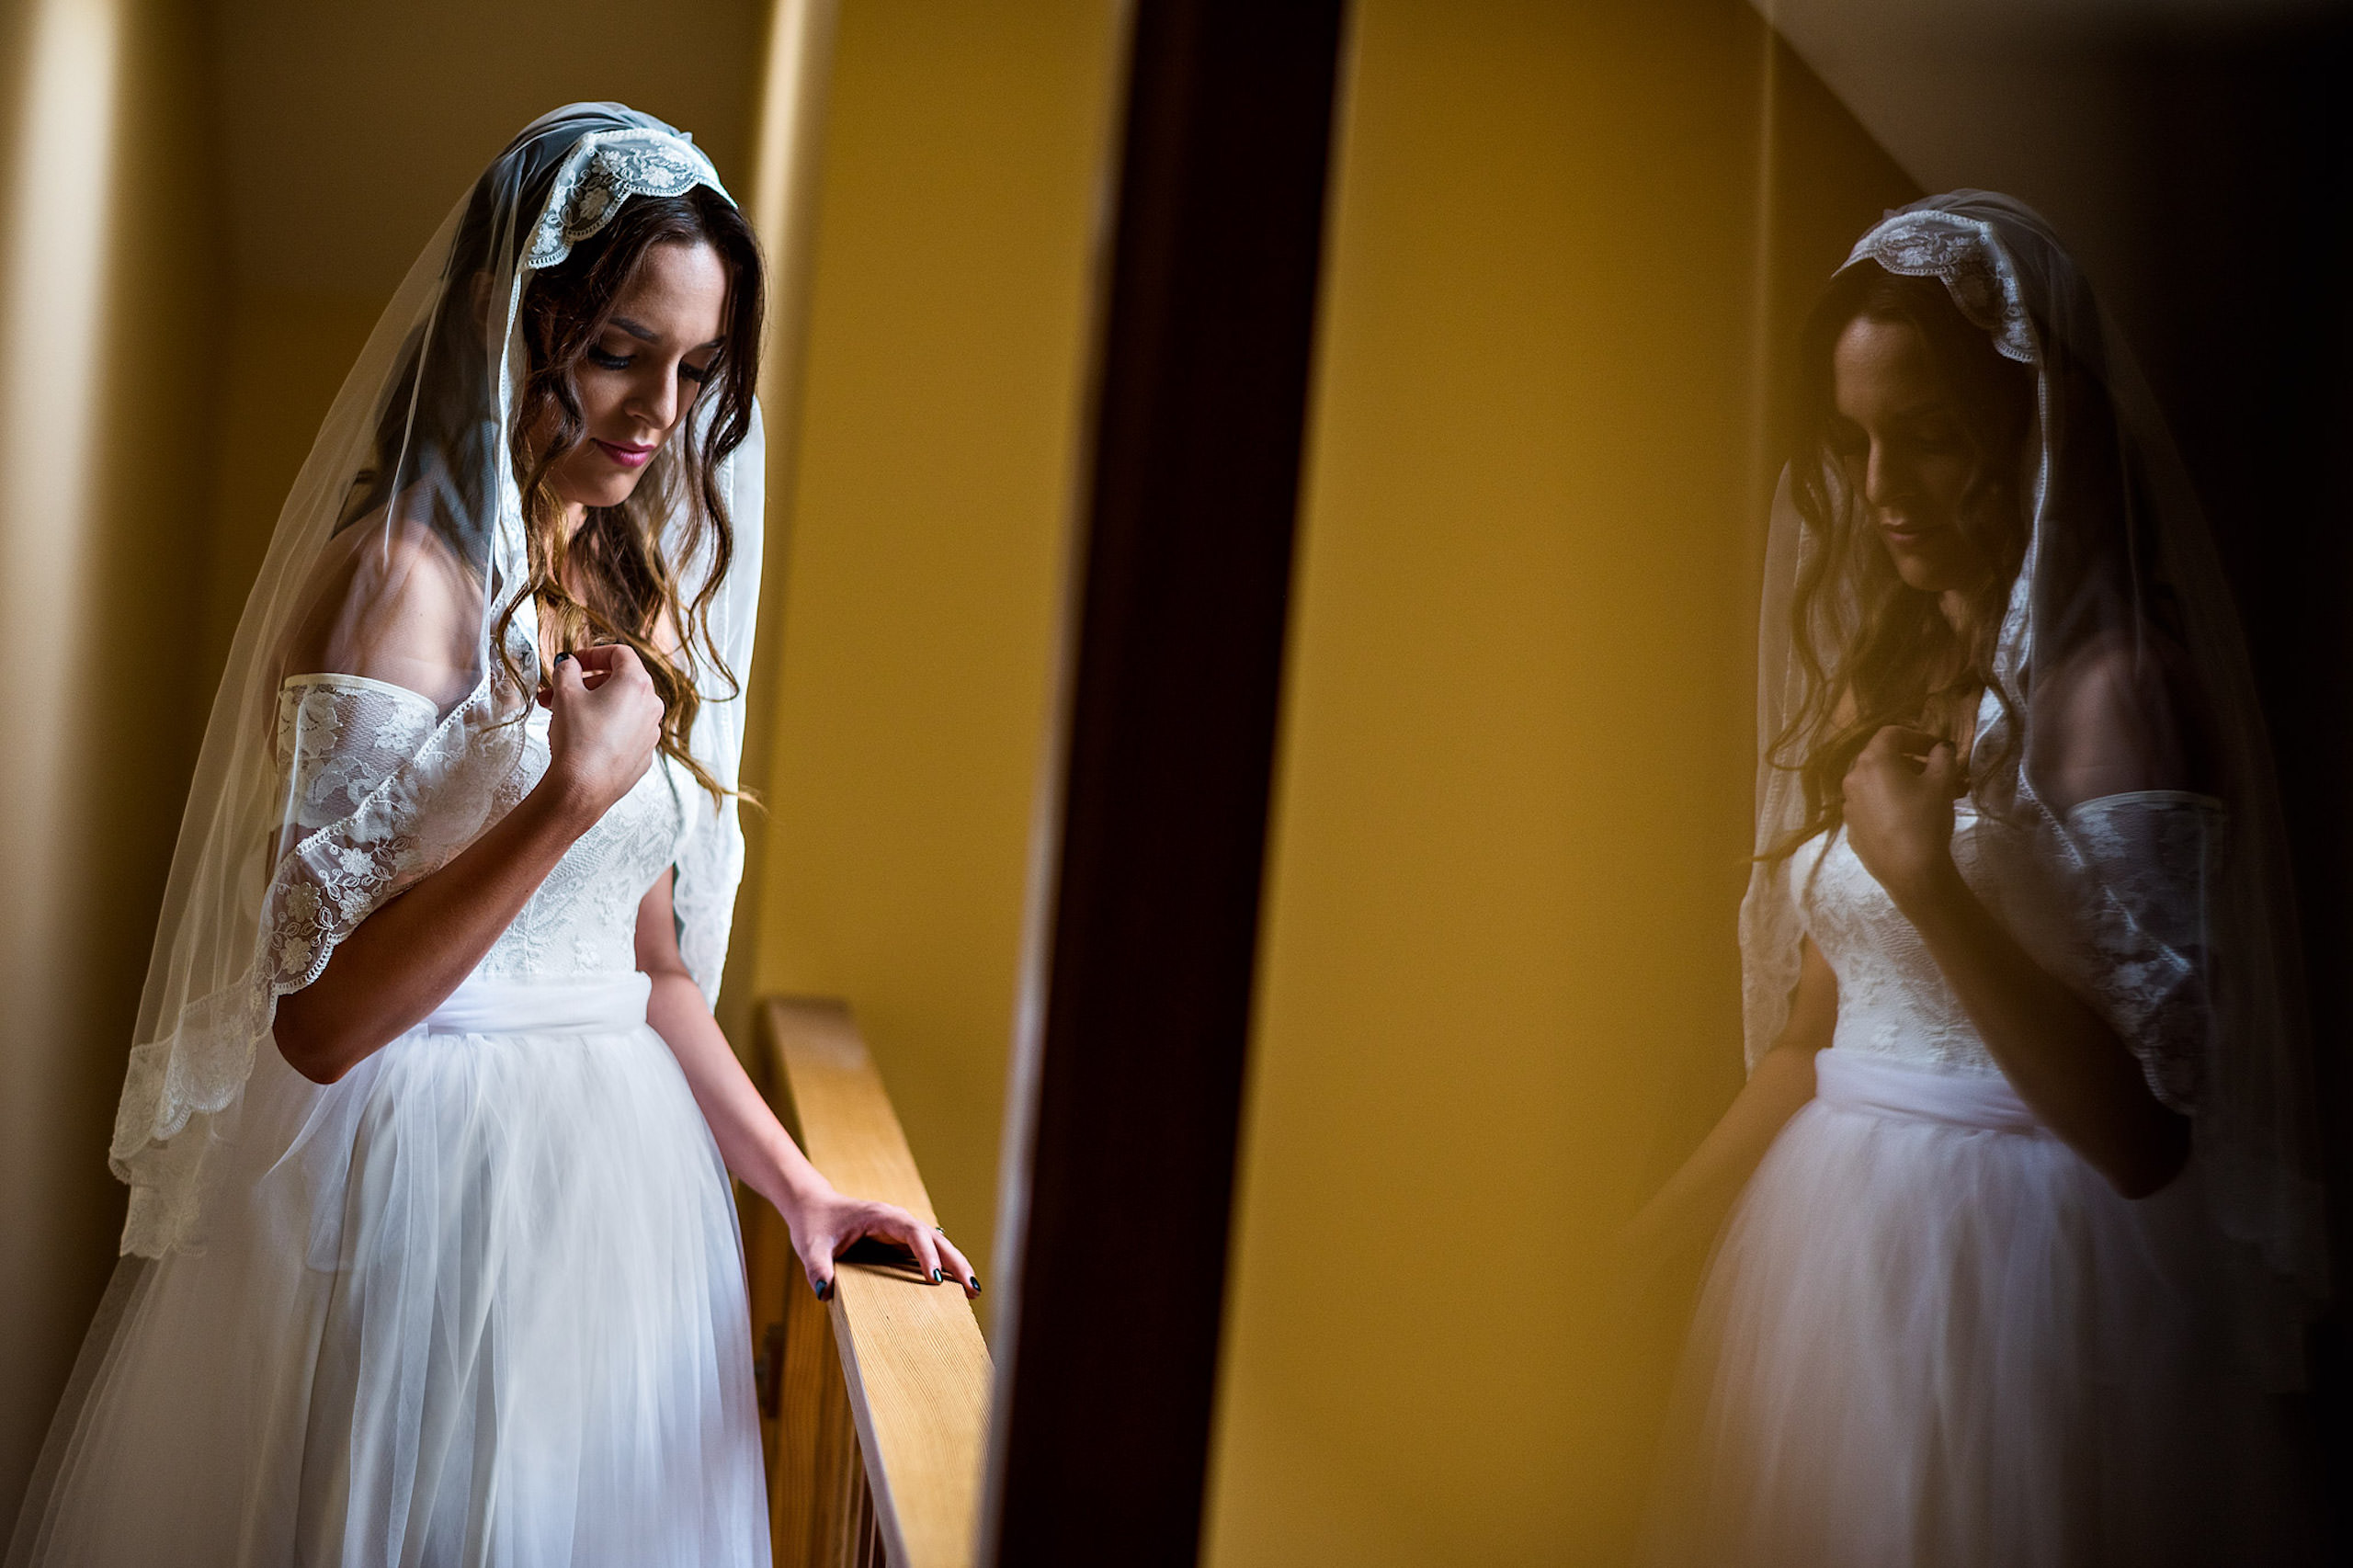 a bride posing in front of a hall way - a room of bridesmaids getting ready - Qualicum Wedding Photographer